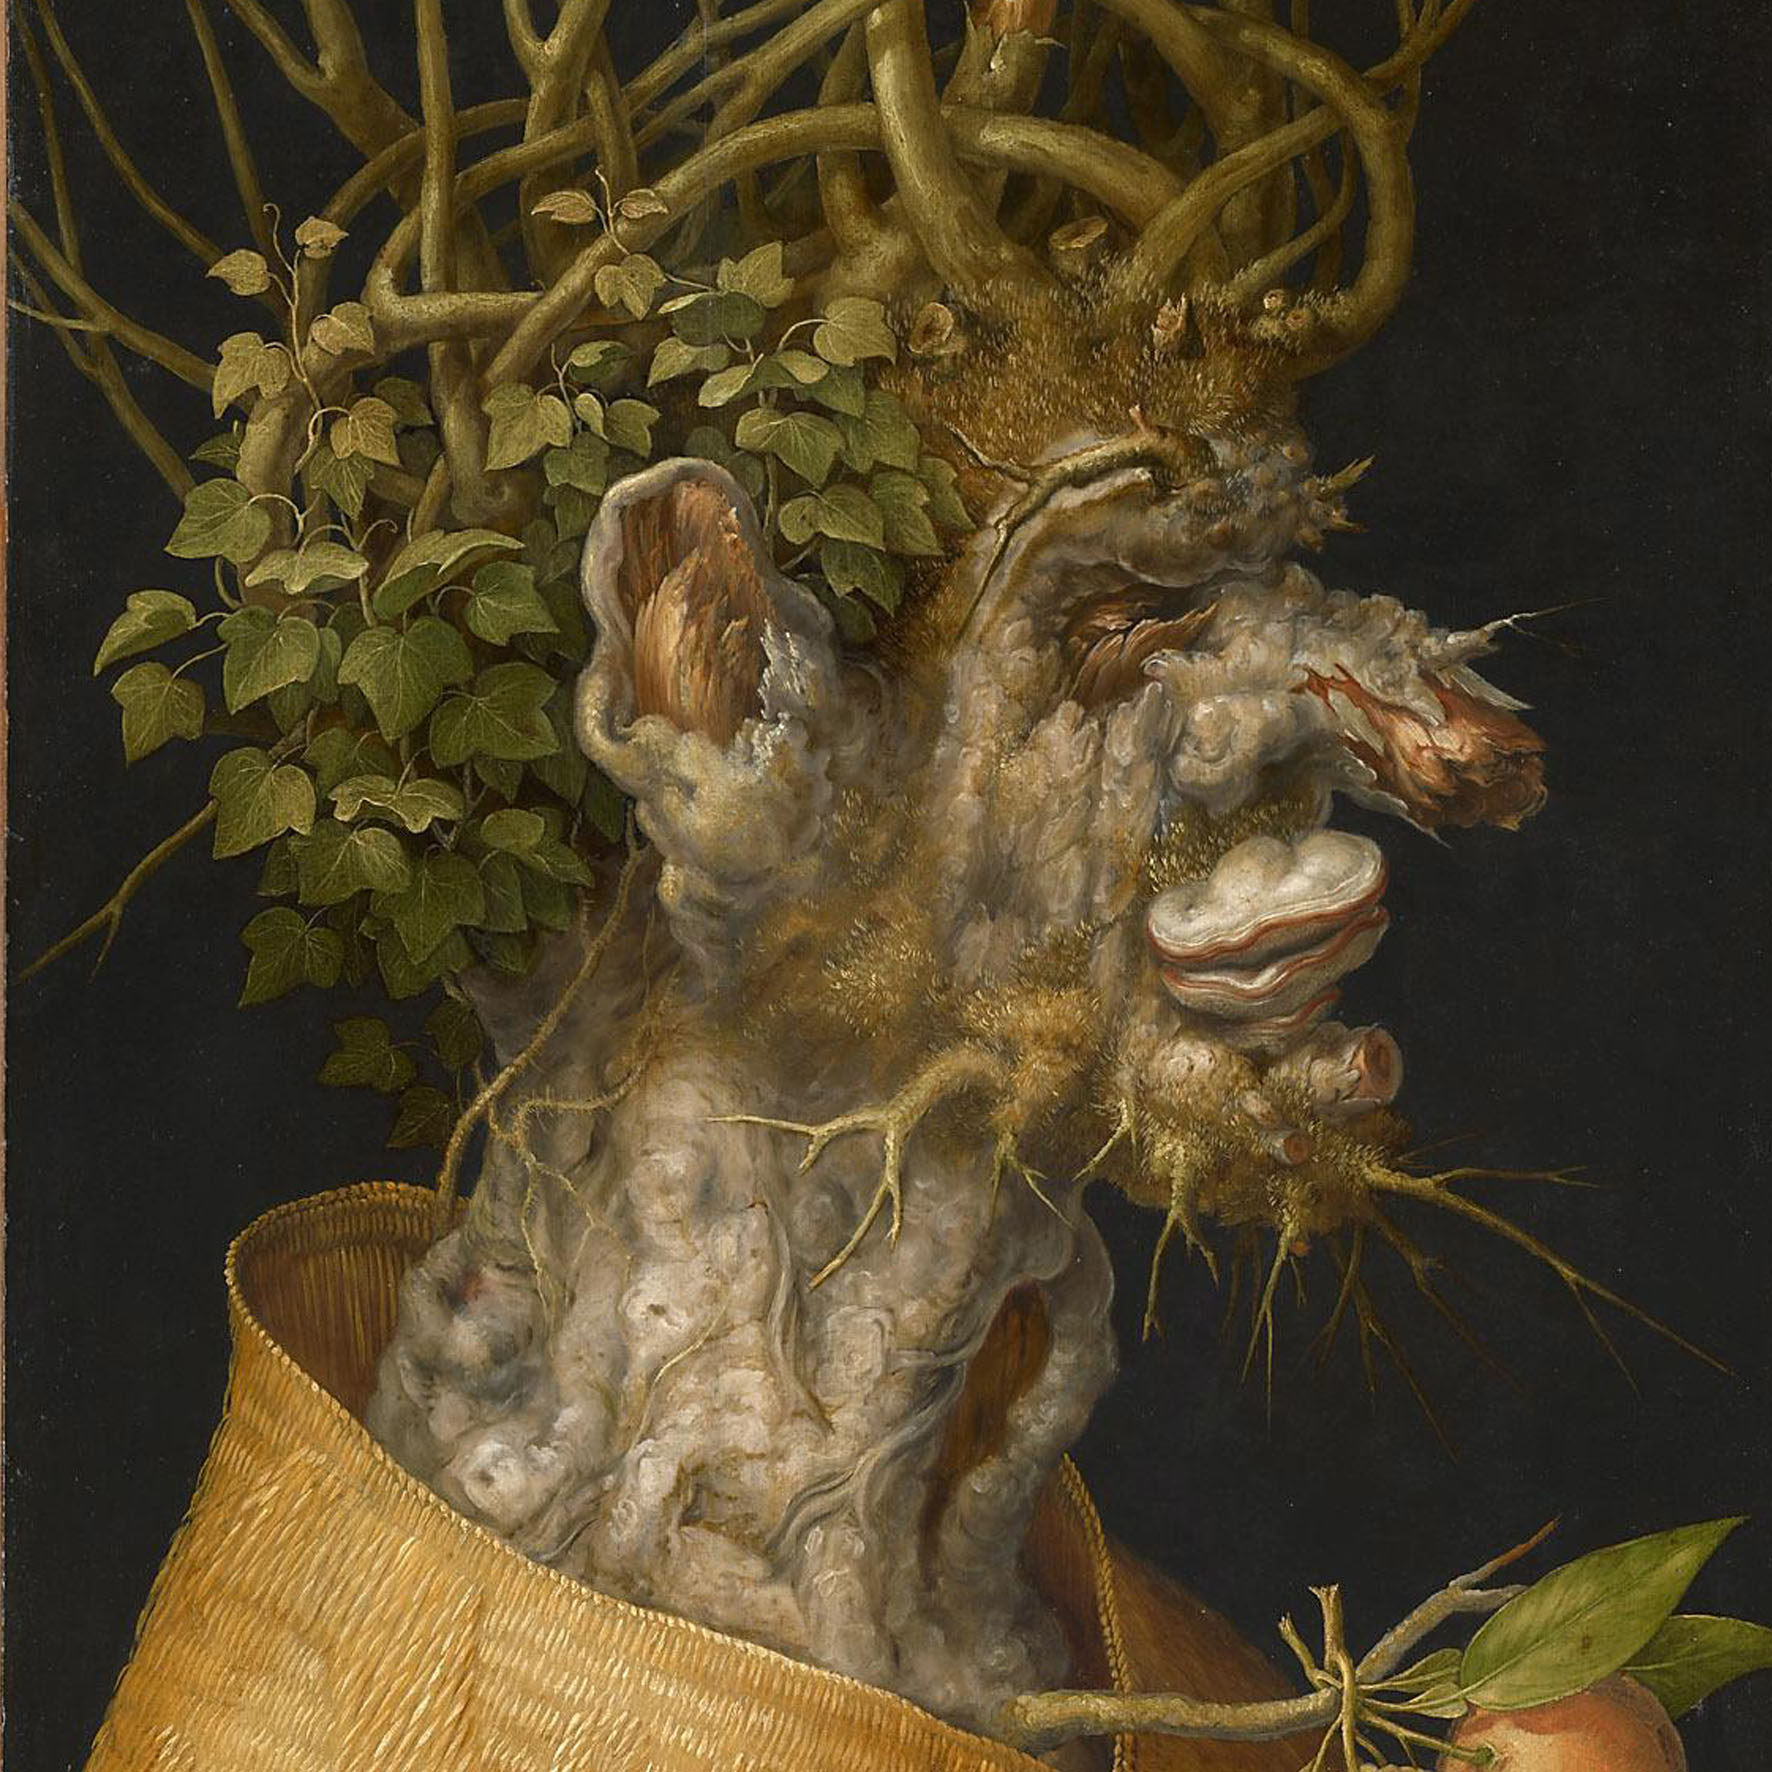 ARCIMBOLDO. NATURE INTO ART